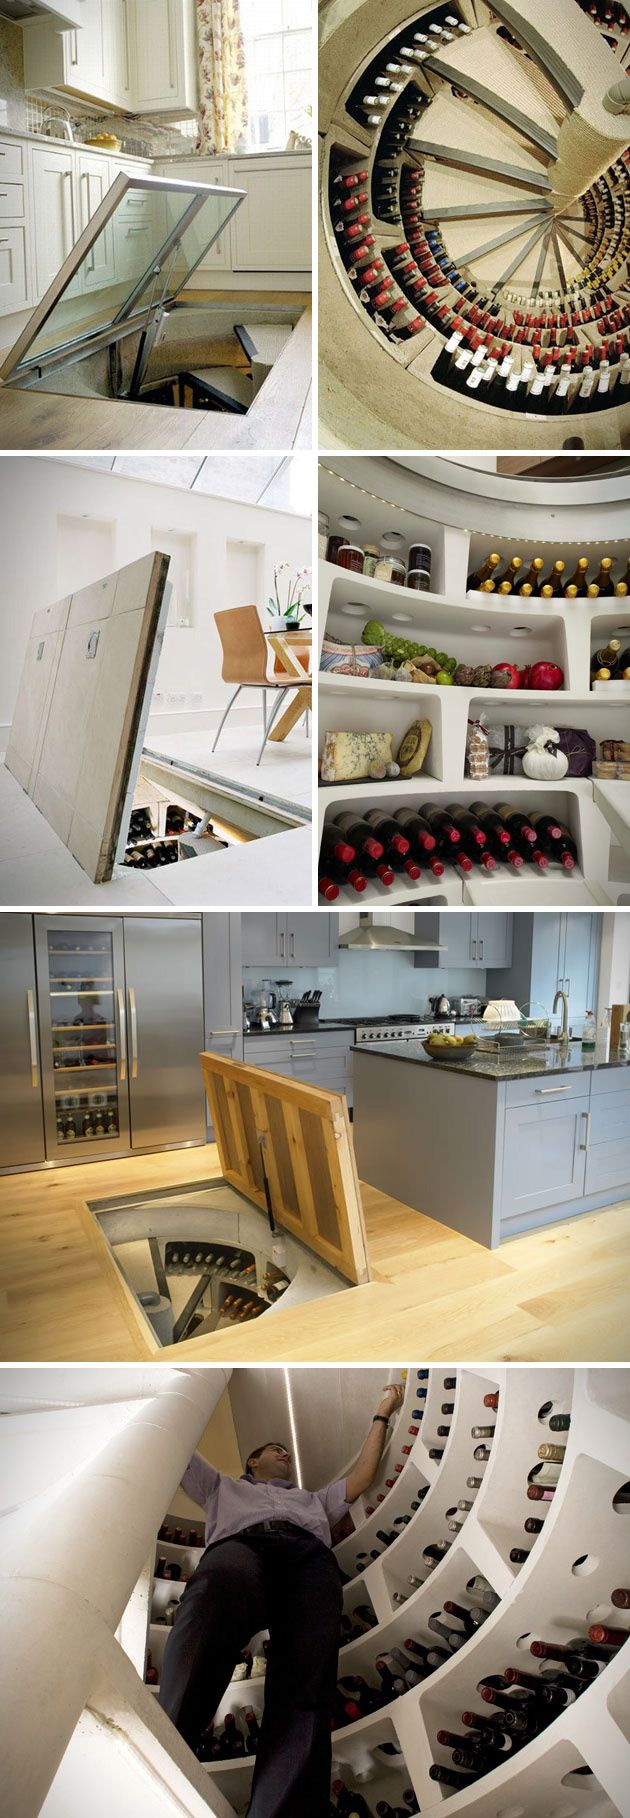 Wine Cellar Kitchen Floor 1000 Ideas About Spiral Wine Cellar On Pinterest Home Wine